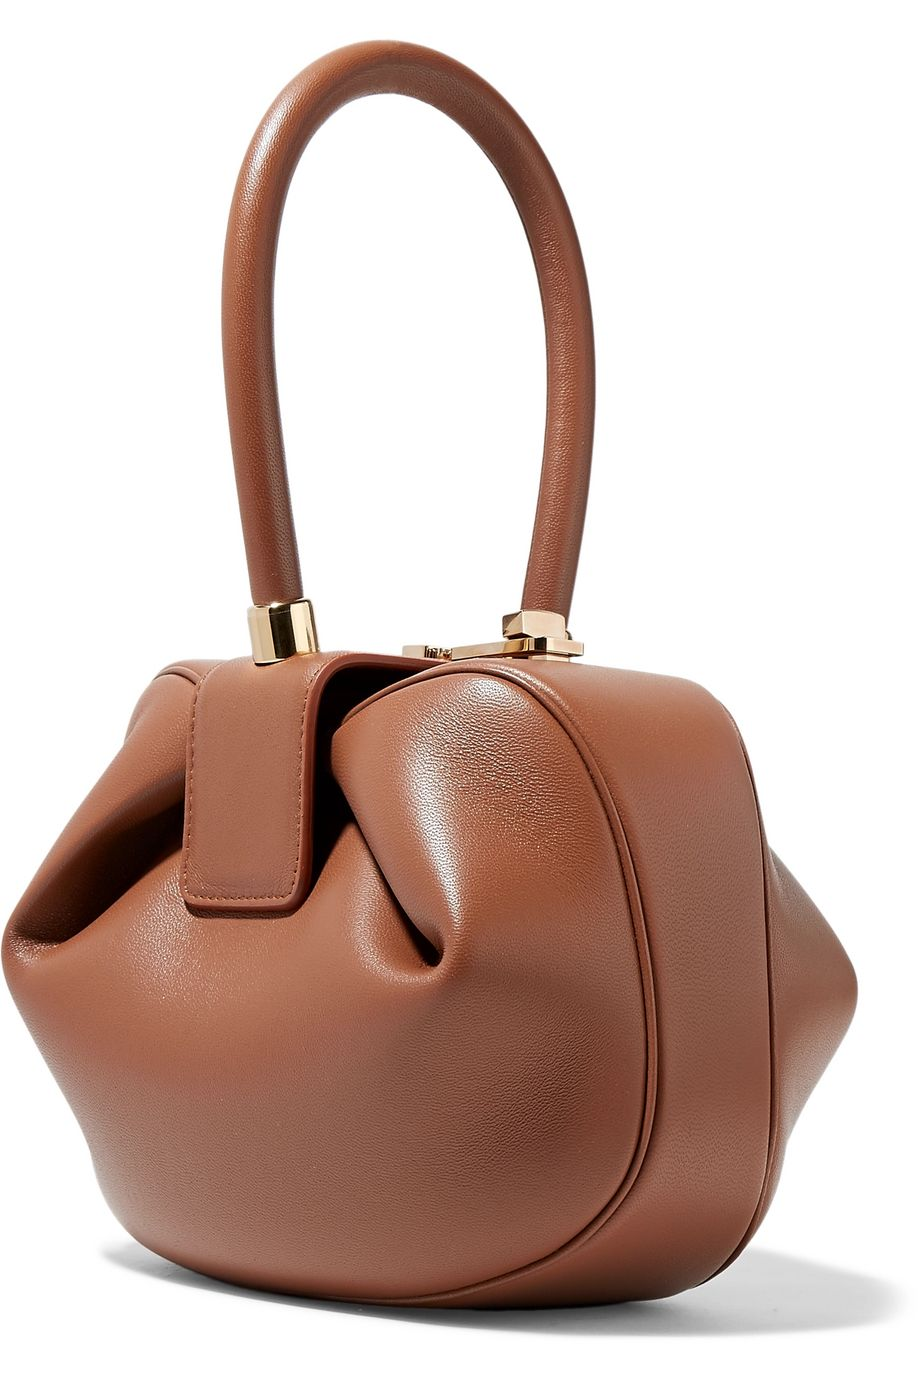 Nina leather tote by GABRIELA HEARST, available on net-a-porter.com for $1995 Angelina Jolie Bags Exact Product